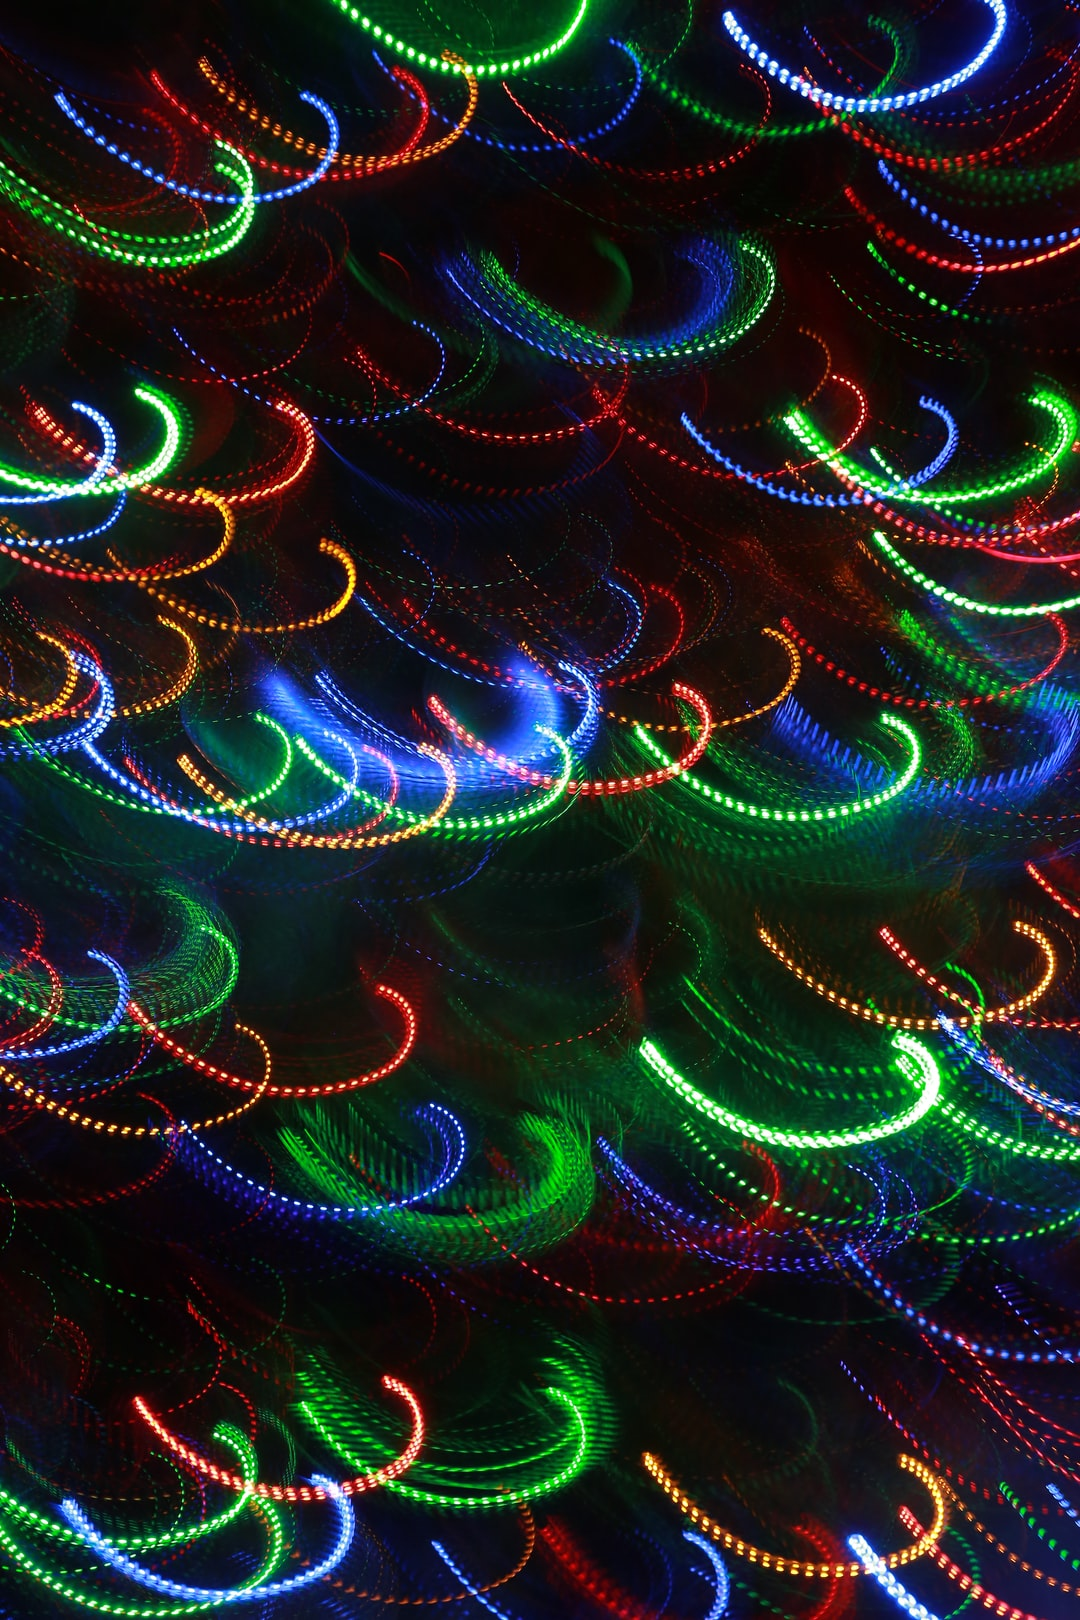 An abstract pattern of half loops in brilliant colors on black background.